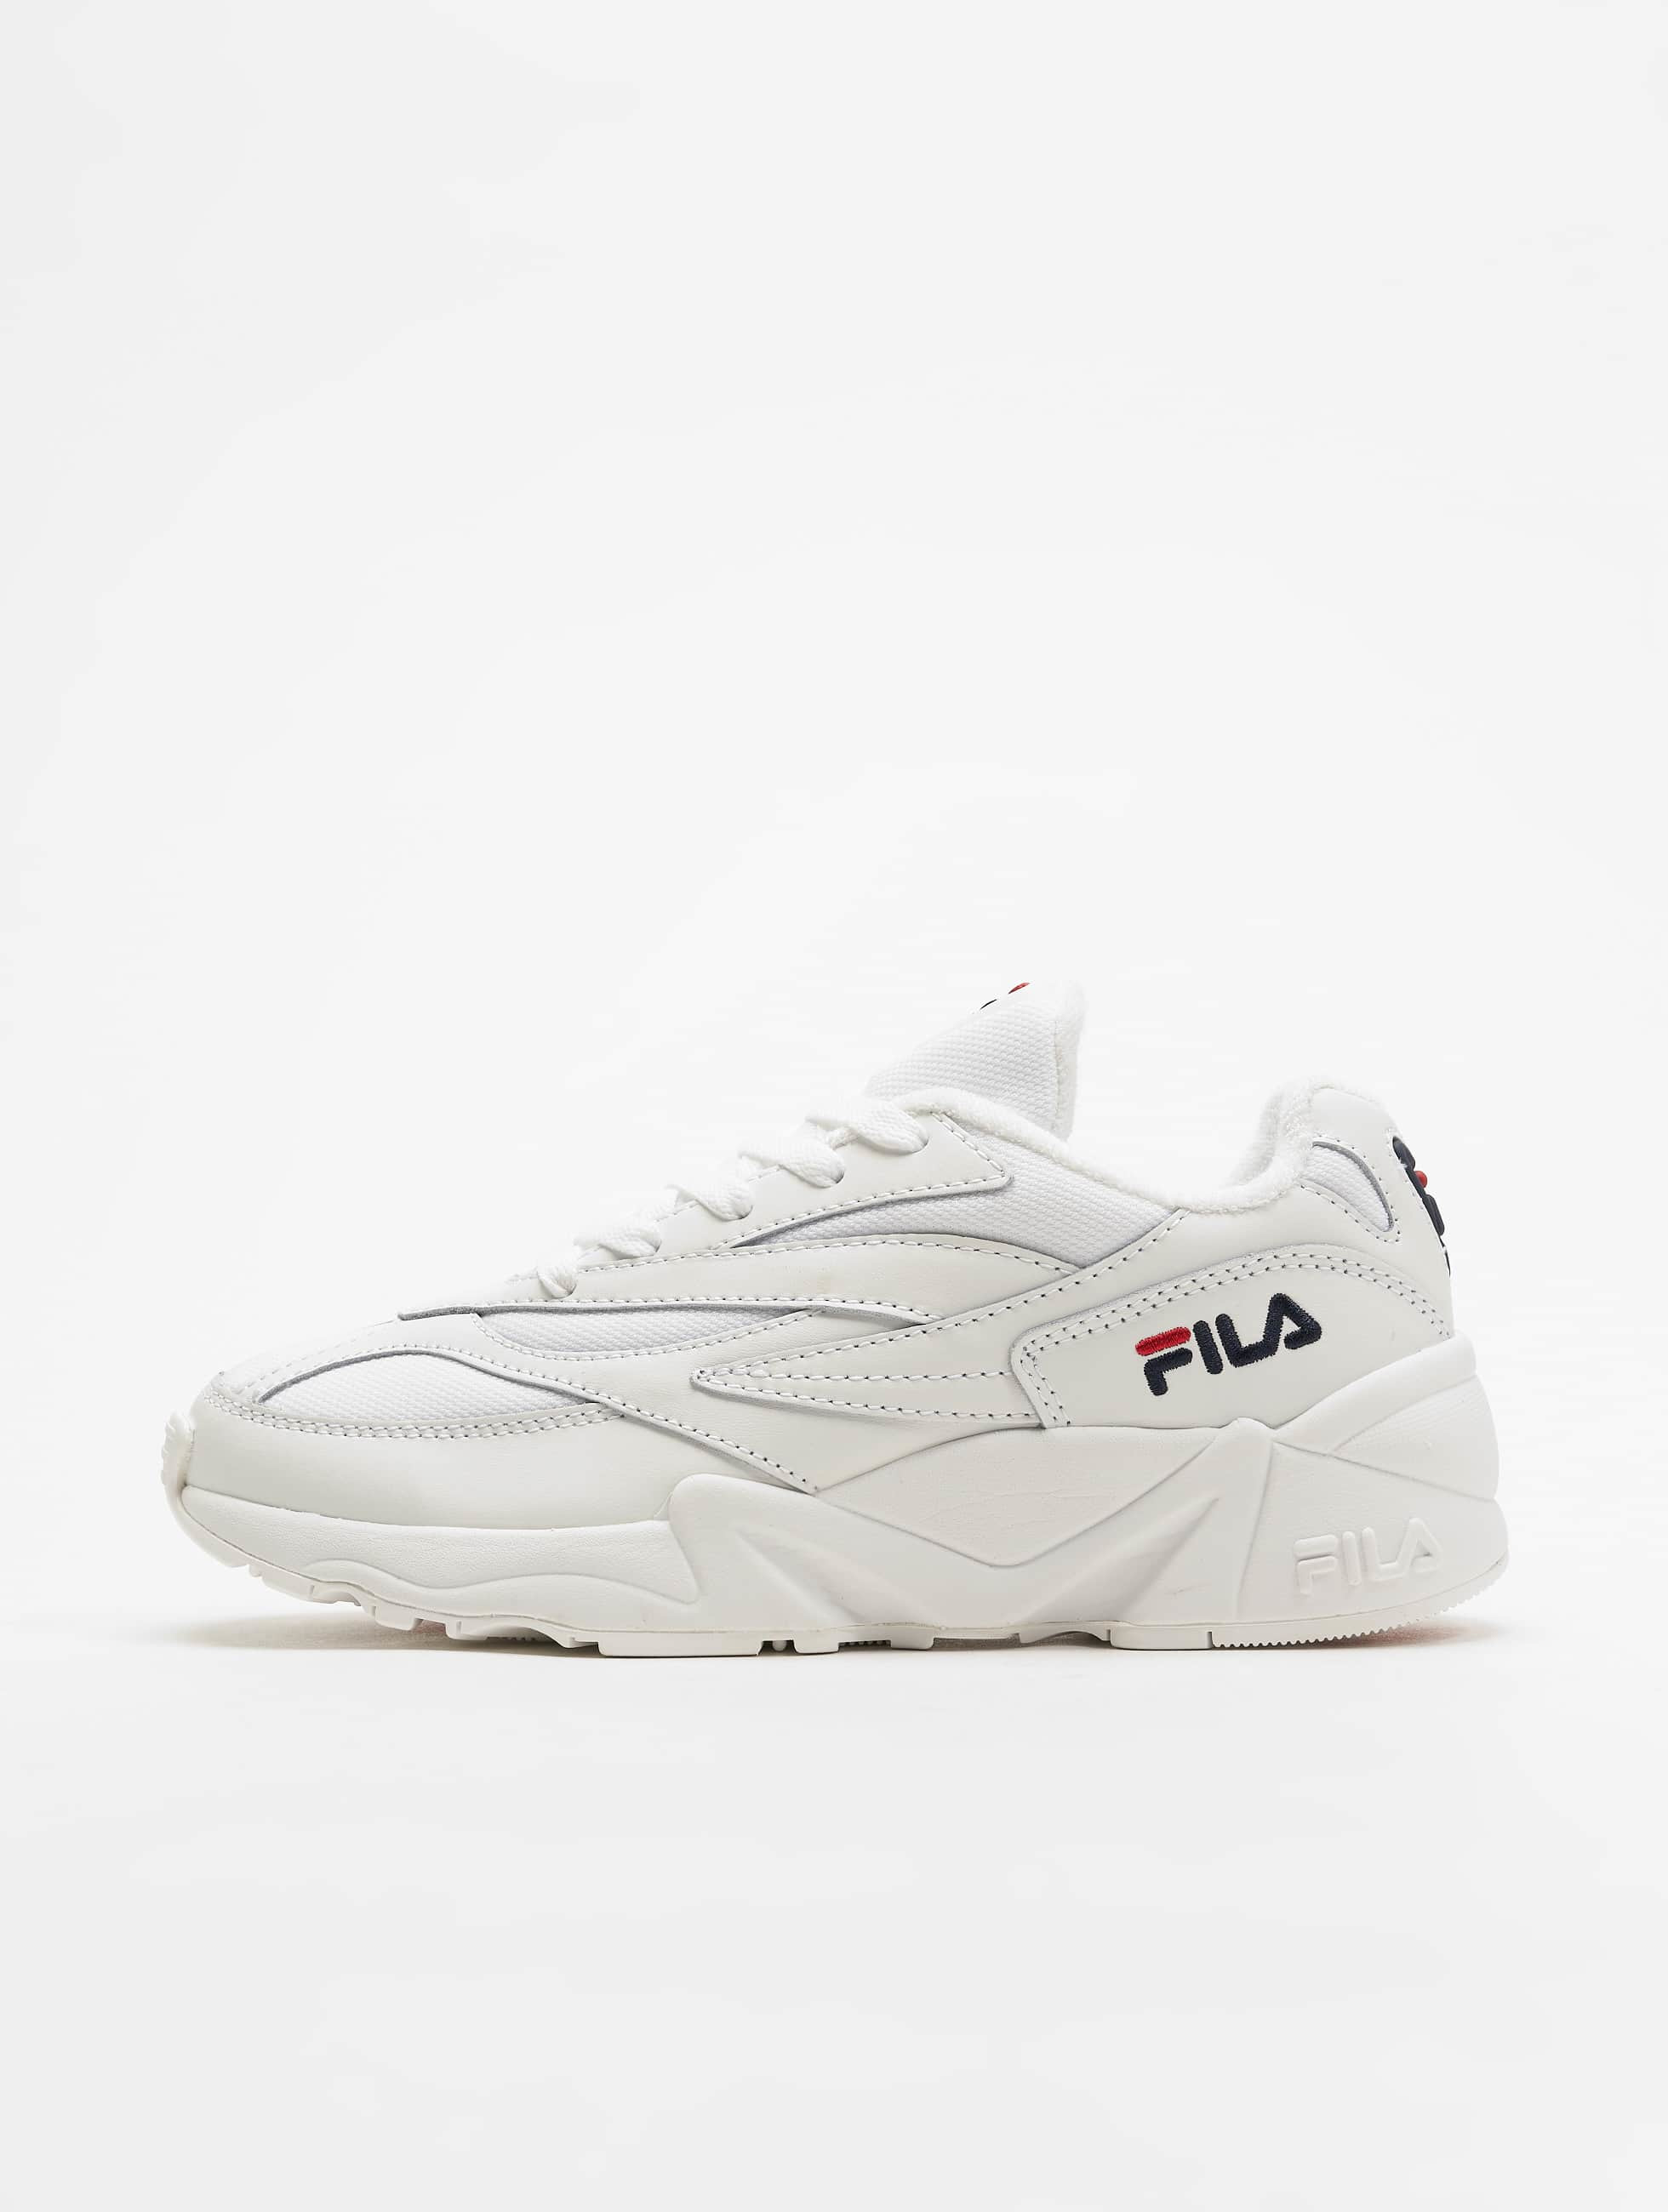 Fila 94 Low Sneakers White